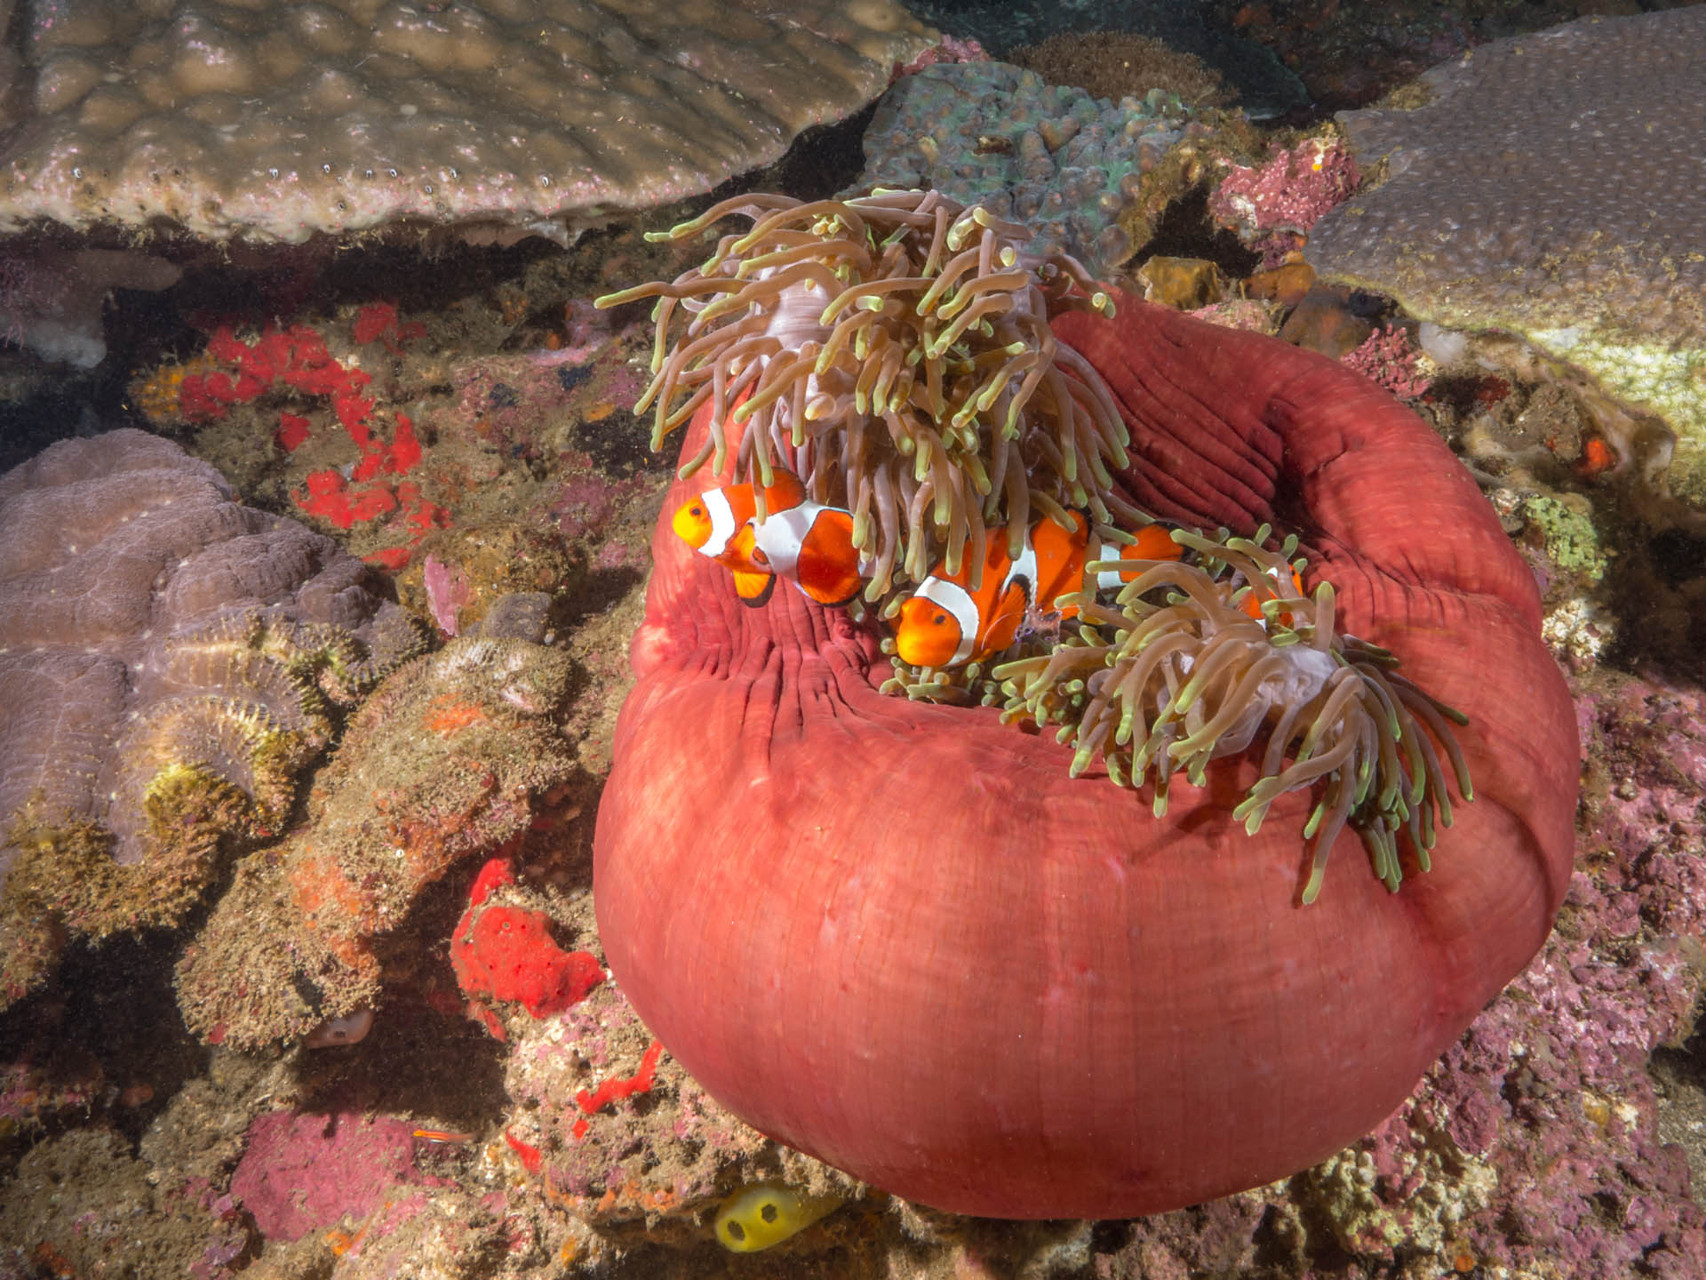 Anemone with False clown anemonefish